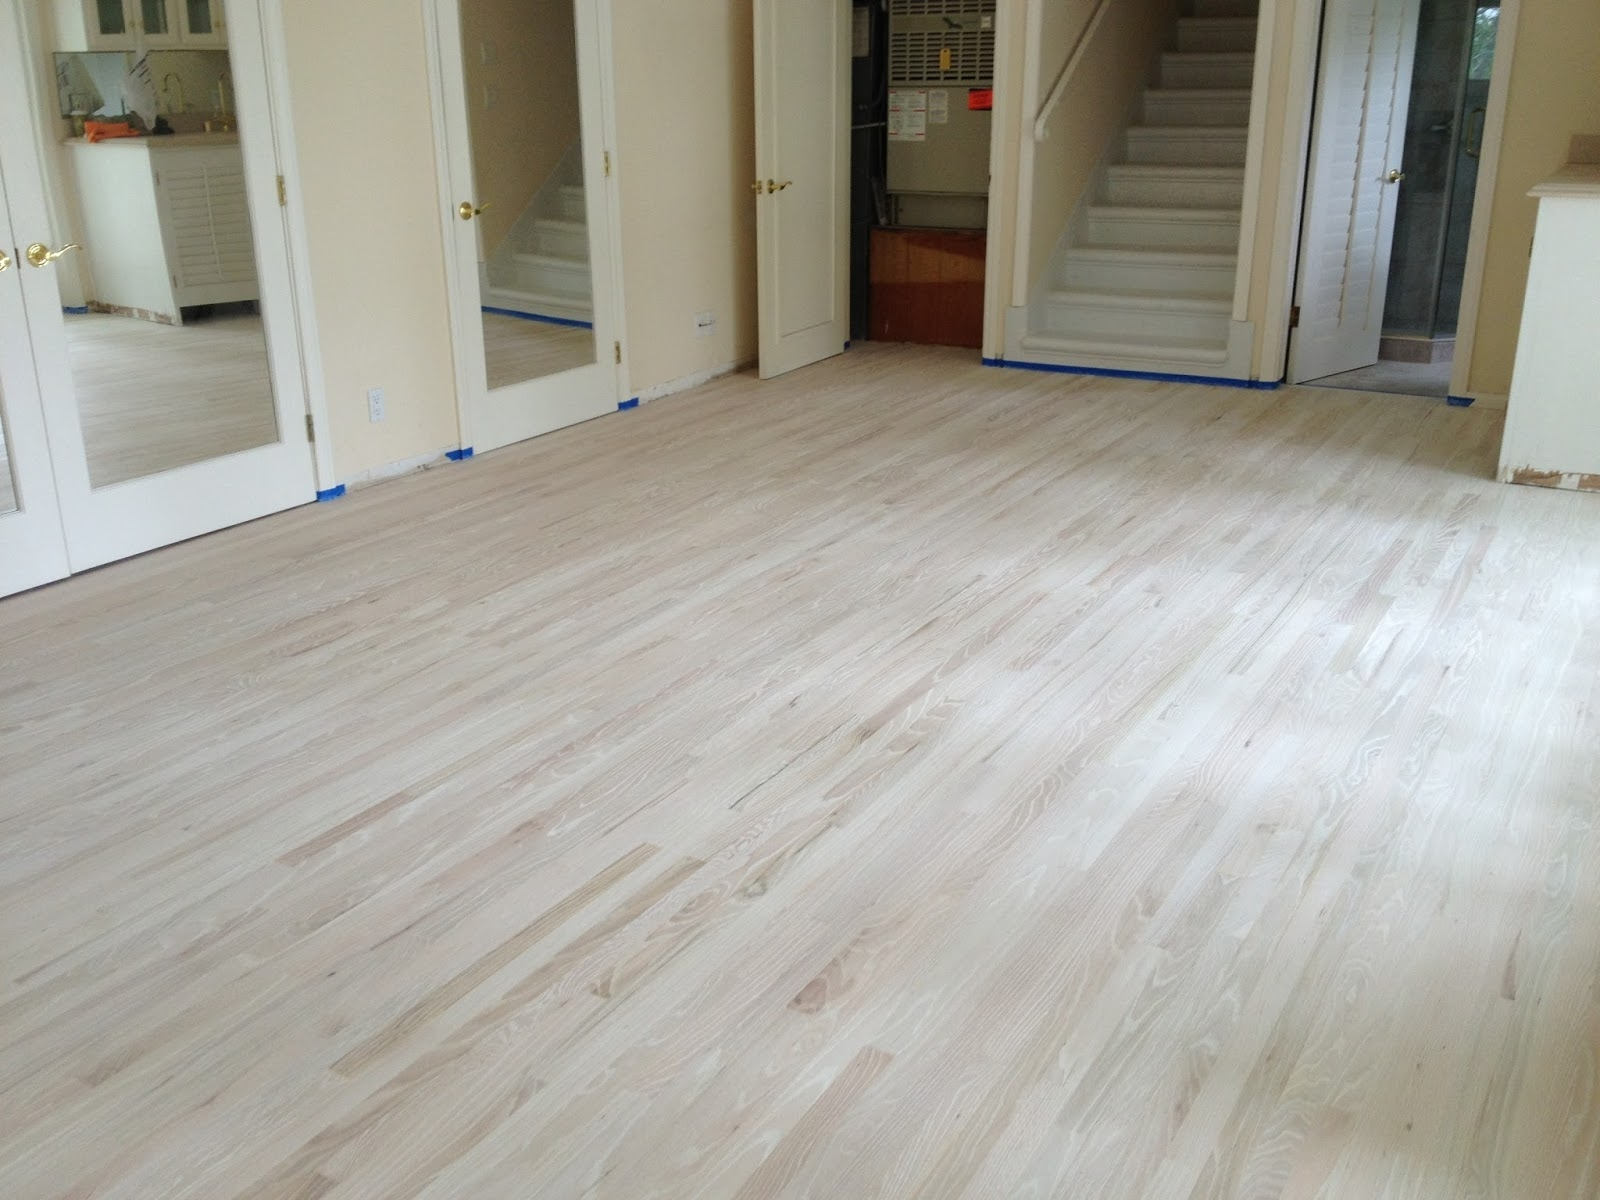 Product To Revitalize Wood Floors Wood Flooring